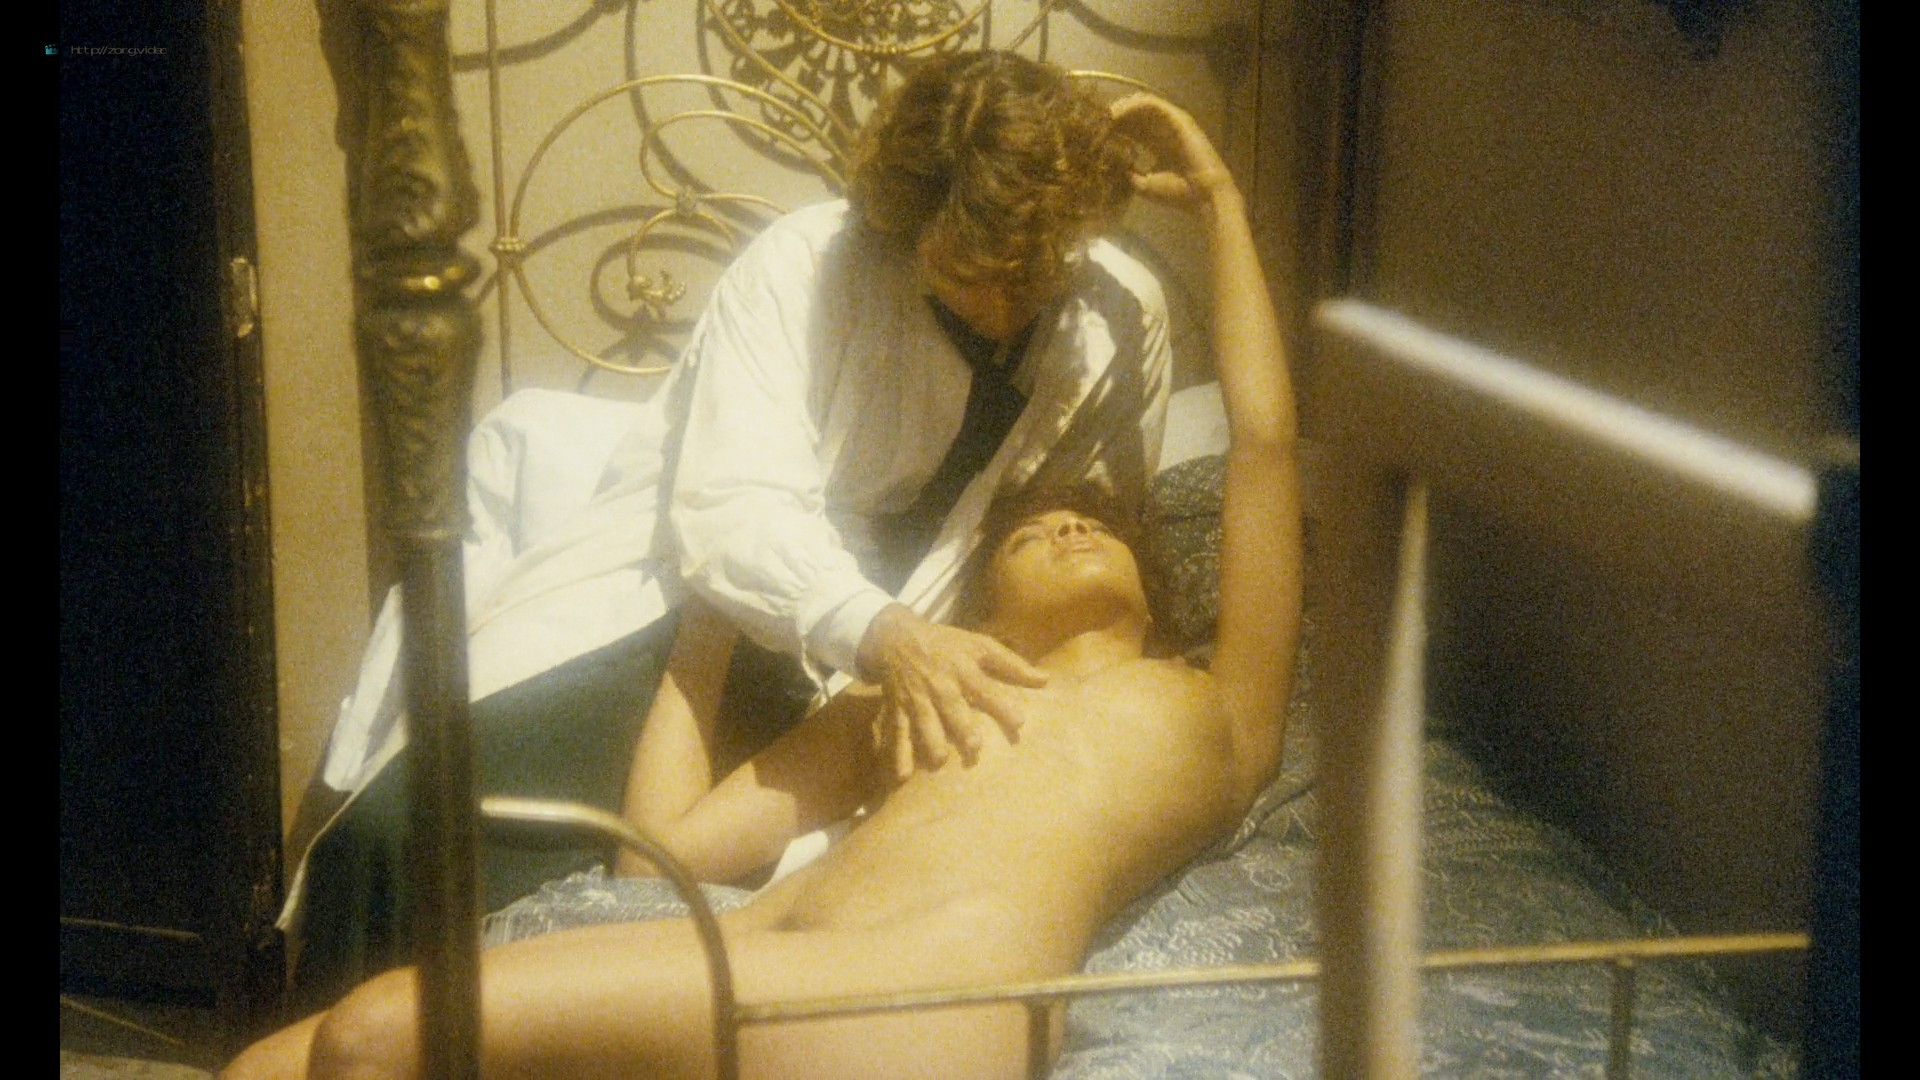 Josephine Jacqueline Jones nude full frontal Florence Guérin and others nude sex too - Black Venus (1983) HD 1080p Web (13)